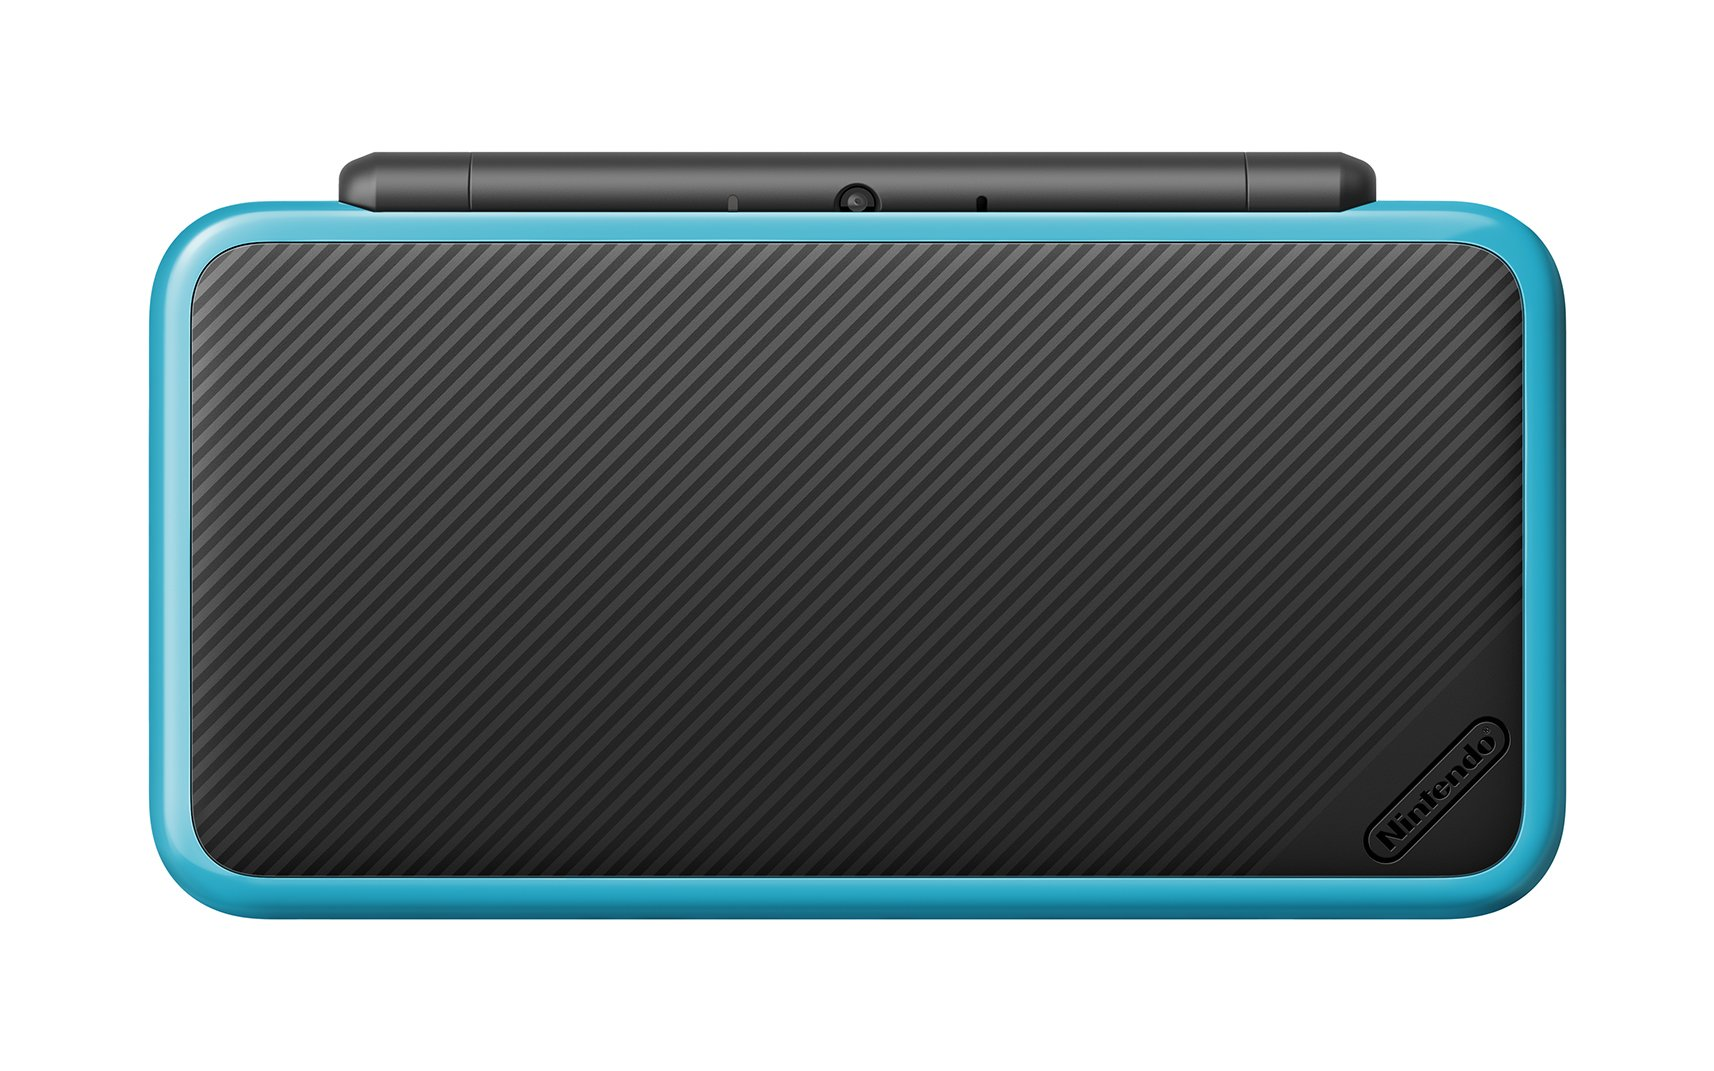 Nintendo New 2DS XL - Black + Turquoise by Nintendo (Image #5)